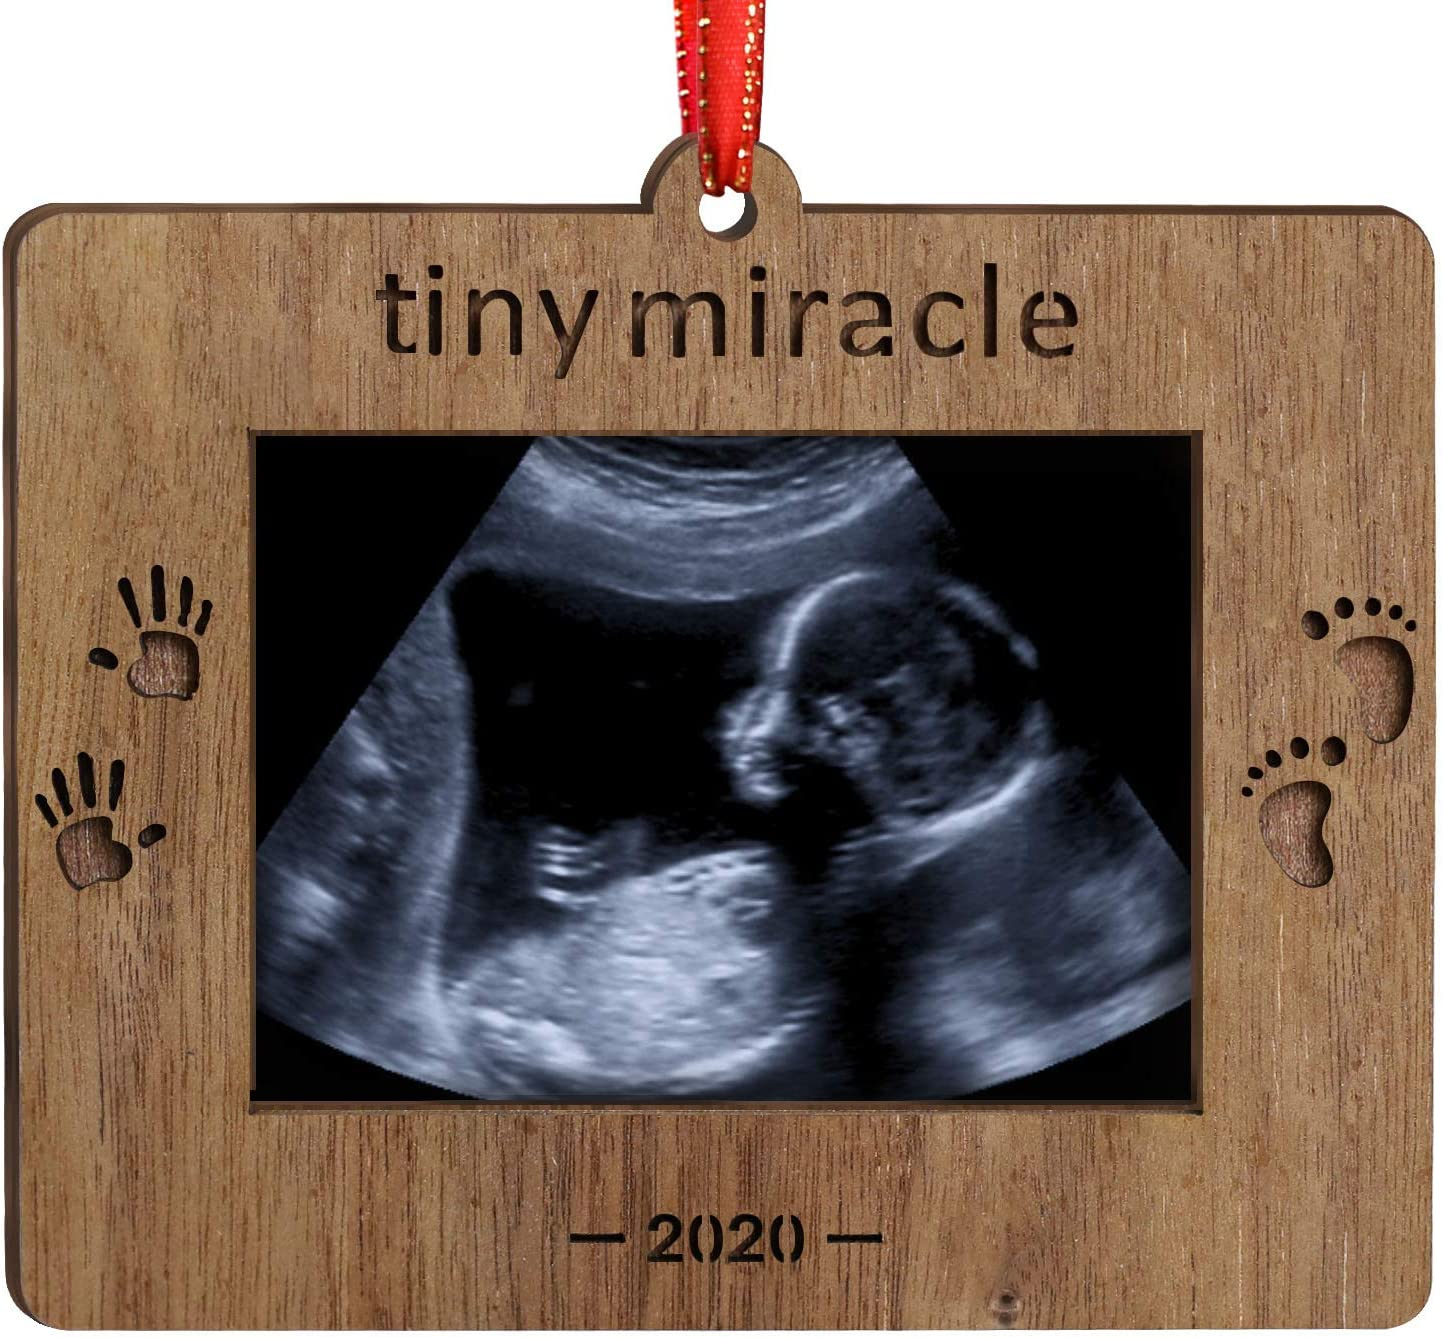 Creawoo Nature Wood Christmas Ornament Baby's First Christmas Baby Gift Sonogram Picture Frame Ultrasound Photo Frame Tiny Miracle Keepsake for Expecting Parents and Grandparents (Tiny Miracle)